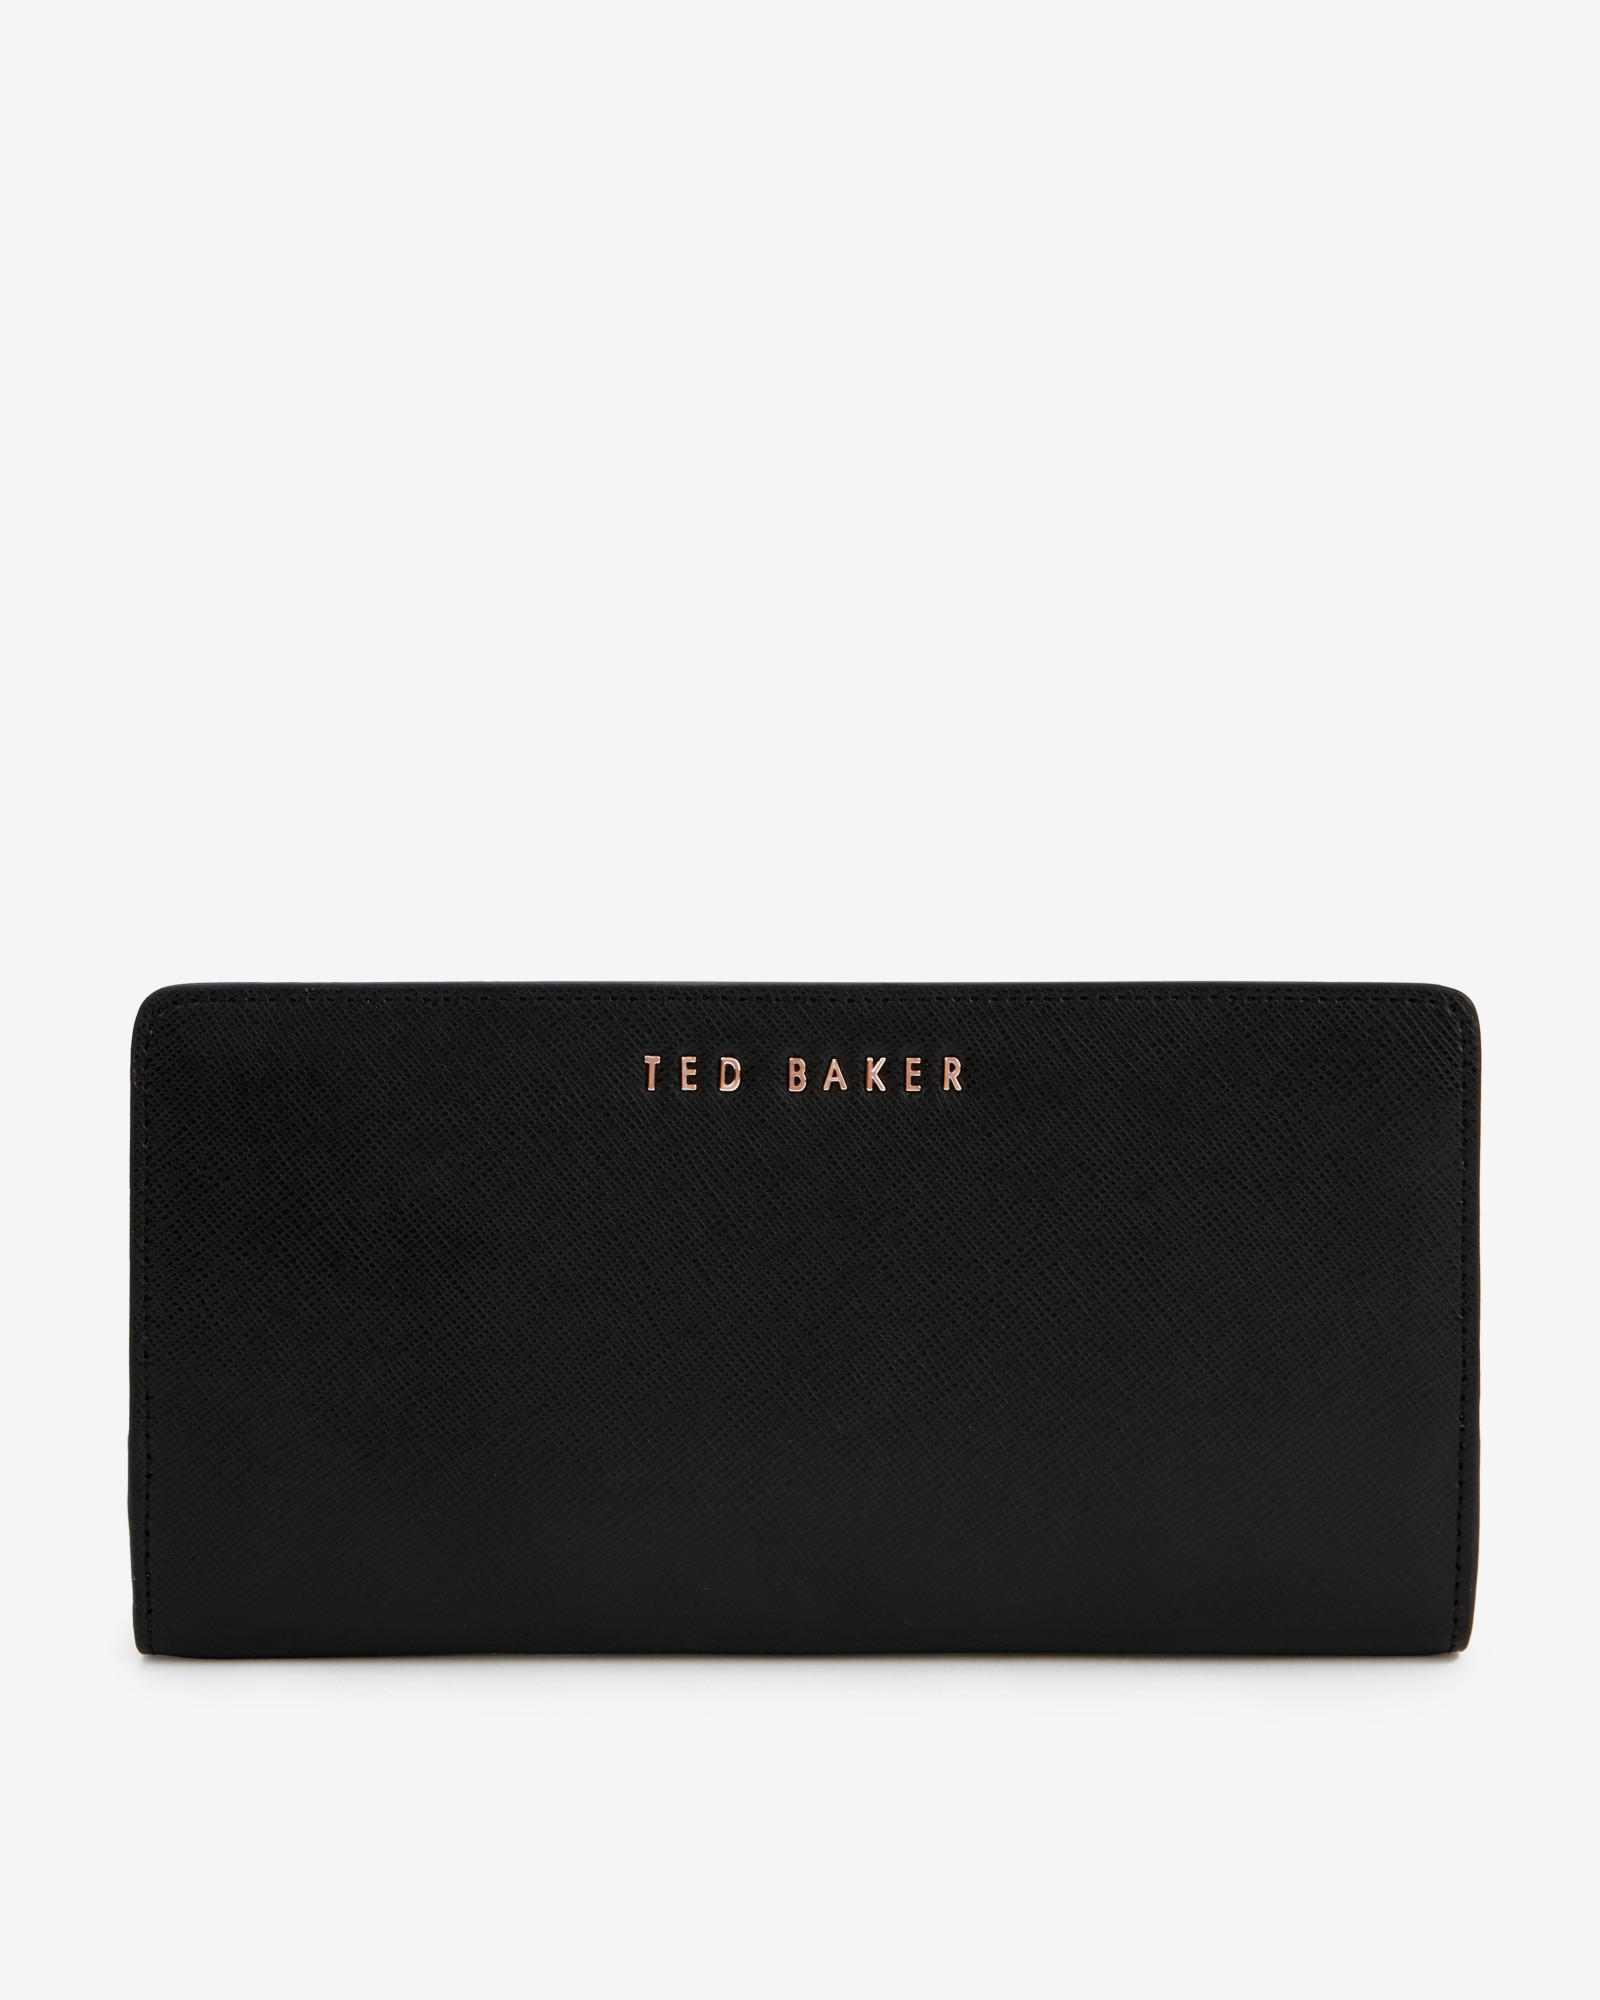 1bc294b97de Ted Baker Colour Block Matinee Purse in Black - Lyst